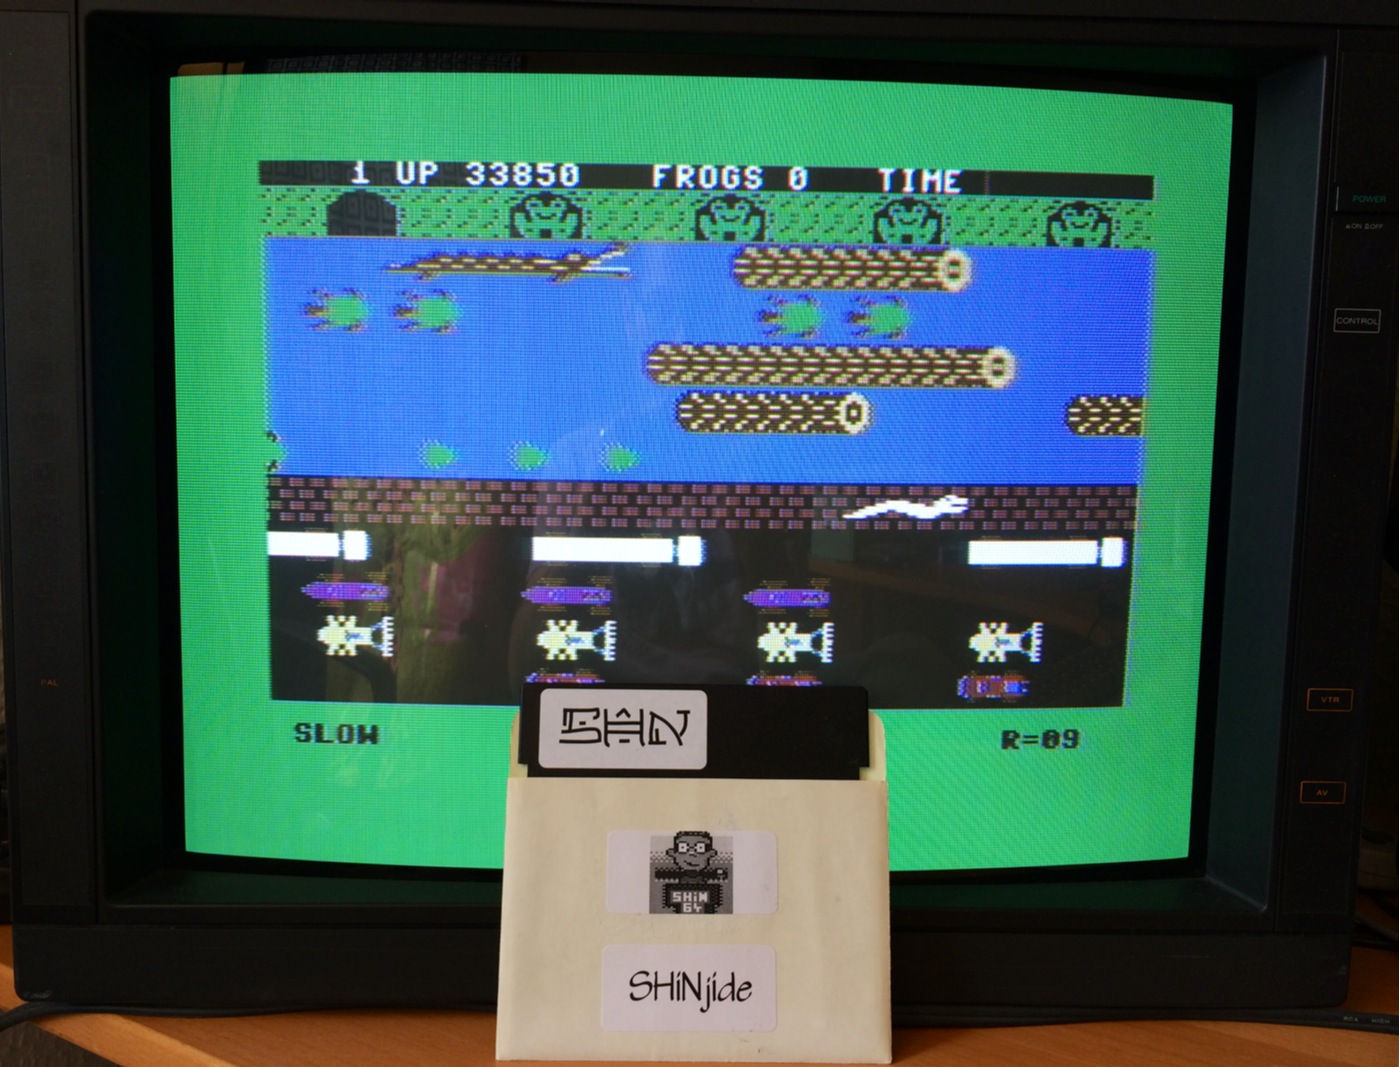 SHiNjide: Frogger: Parker Bros [Slow] (Commodore 64) 33,850 points on 2014-07-07 07:18:10